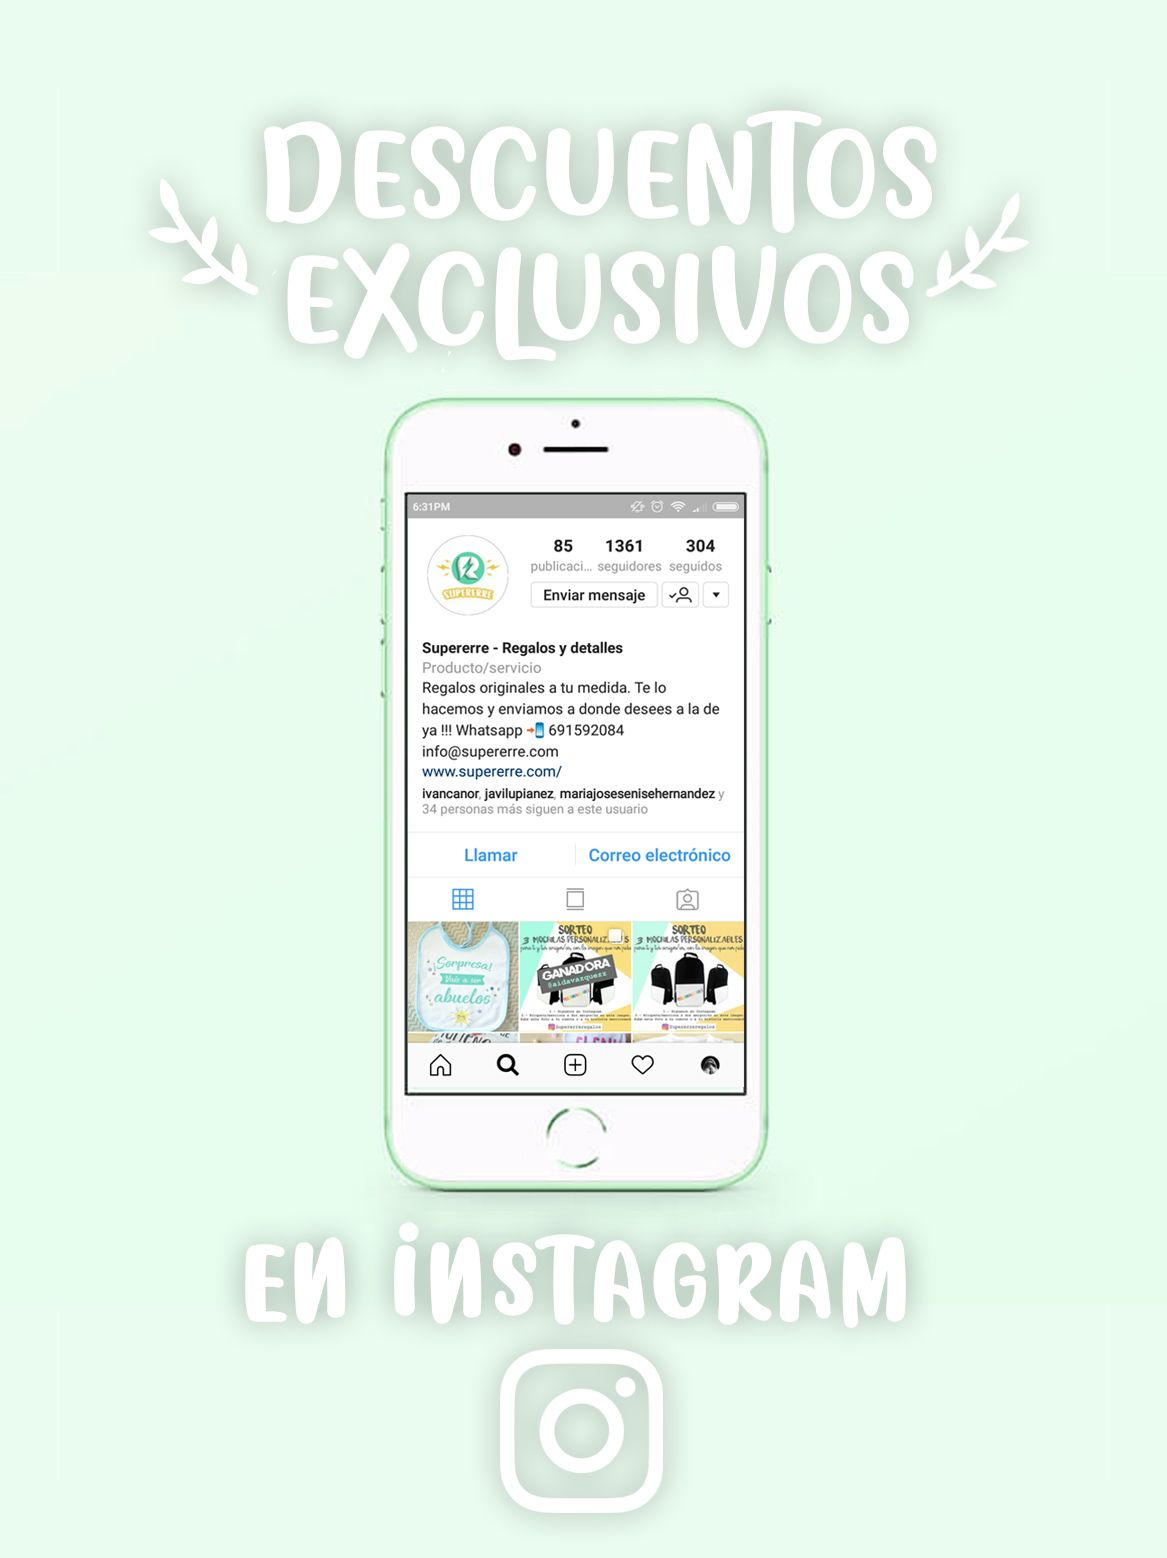 Supererre Descuentos exclusivos en Instagram